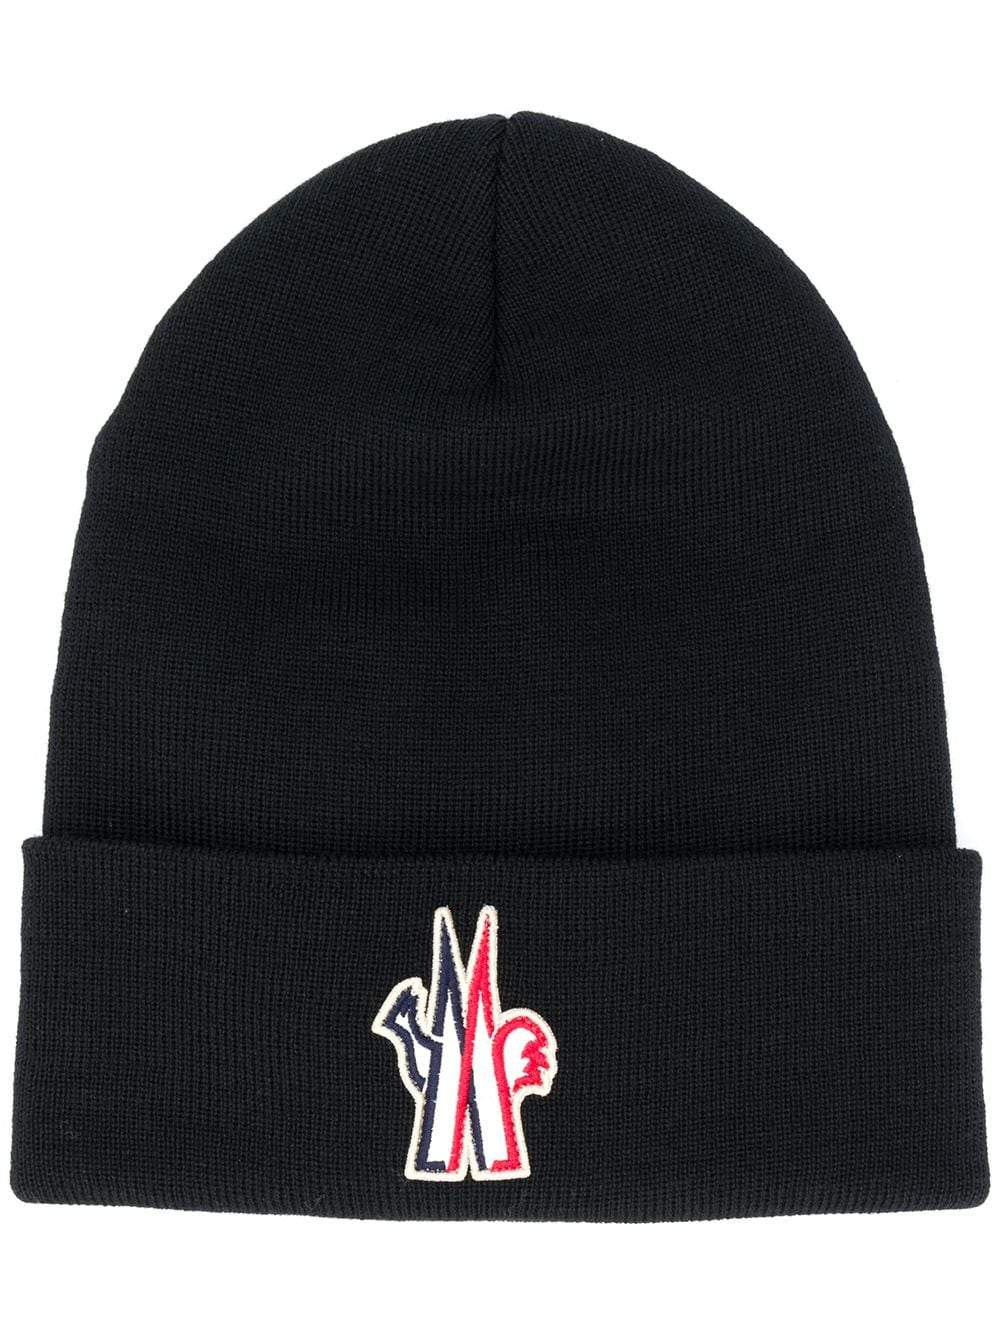 MONCLER GRENOBLE embroidered logo beanie black